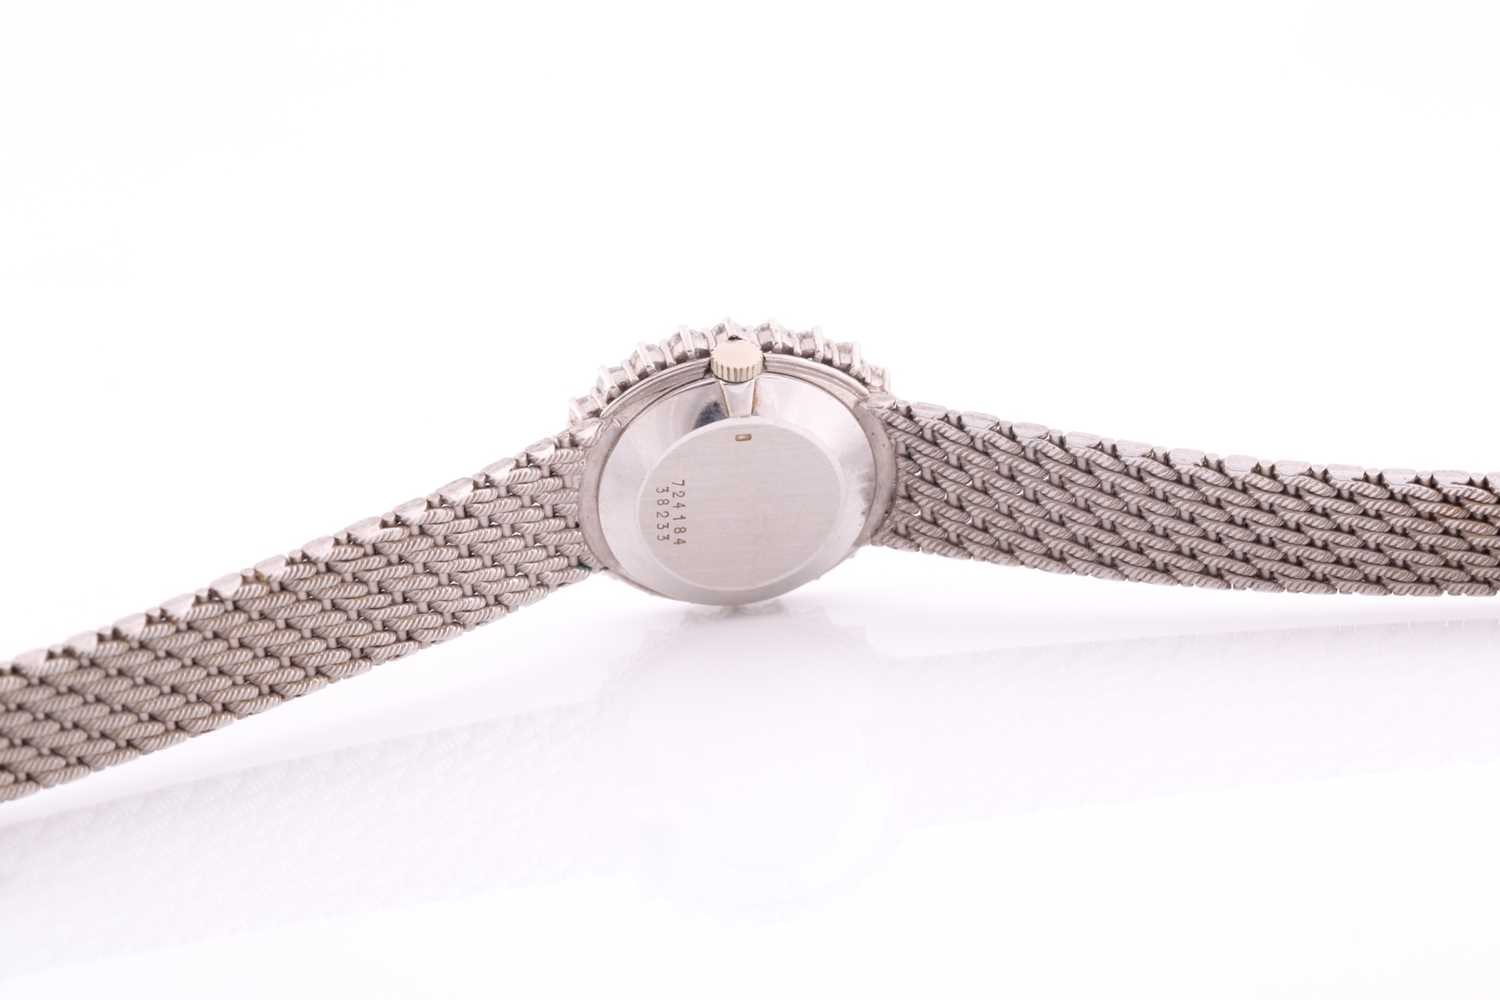 A white metal ladies Baume and Mercier wristwatch, the bezel set with round brilliant-cut diamonds - Image 3 of 3